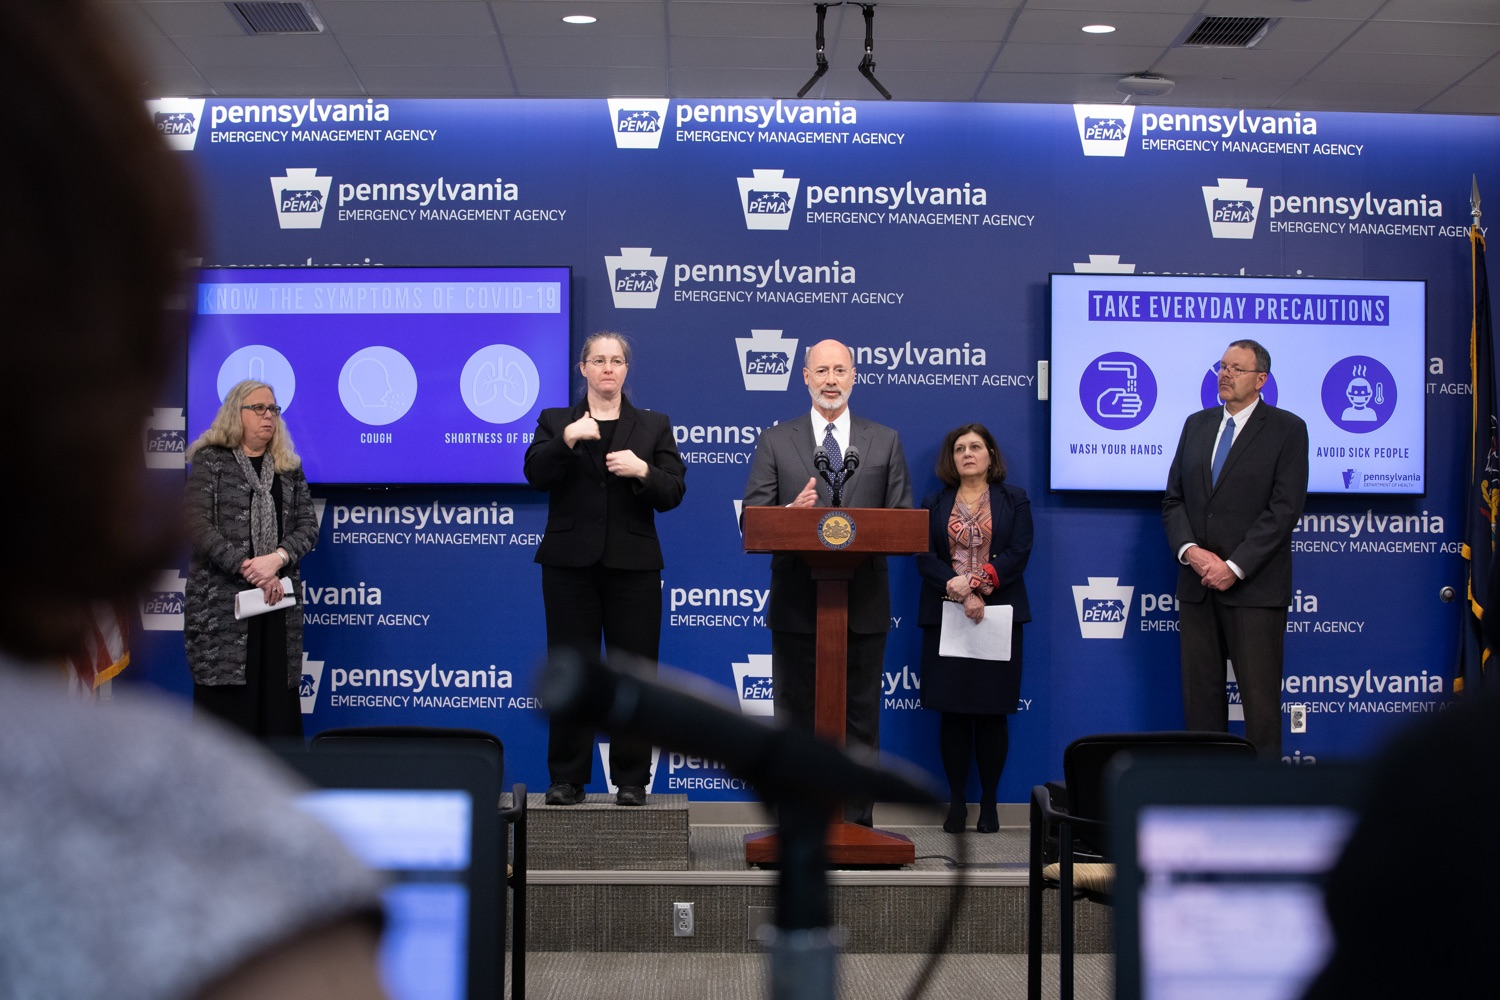 """<a href=""""https://filesource.wostreaming.net/commonwealthofpa/photo/17888_gov_covid19_update_dz_0003.jpg"""" target=""""_blank"""">⇣Download Photo<br></a>Governor Tom Wolf  answers questions submitted by reporters. Governor Tom Wolf and Secretary of Health Dr. Rachel Levine provided an update on the coronavirus known as COVID-19 and outline ongoing efforts to mitigate the virus in Pennsylvania. The Department of Health anticipates that there will be more Pennsylvanians who test positive for COVID-19 in the coming days and weeks and it is important for residents to know the commonwealth is prepared and to be prepared themselves. People have a higher chance of testing positive for COVID-19 if they have traveled to a country or state with known community outbreaks or have come in contact with someone who has the virus. The Wolf Administration is working with the health care community across Pennsylvania to keep them informed, consult on patient testing, and ensure they have the resources they need to care for patients. .March 16, 2020  Harrisburg Pa."""